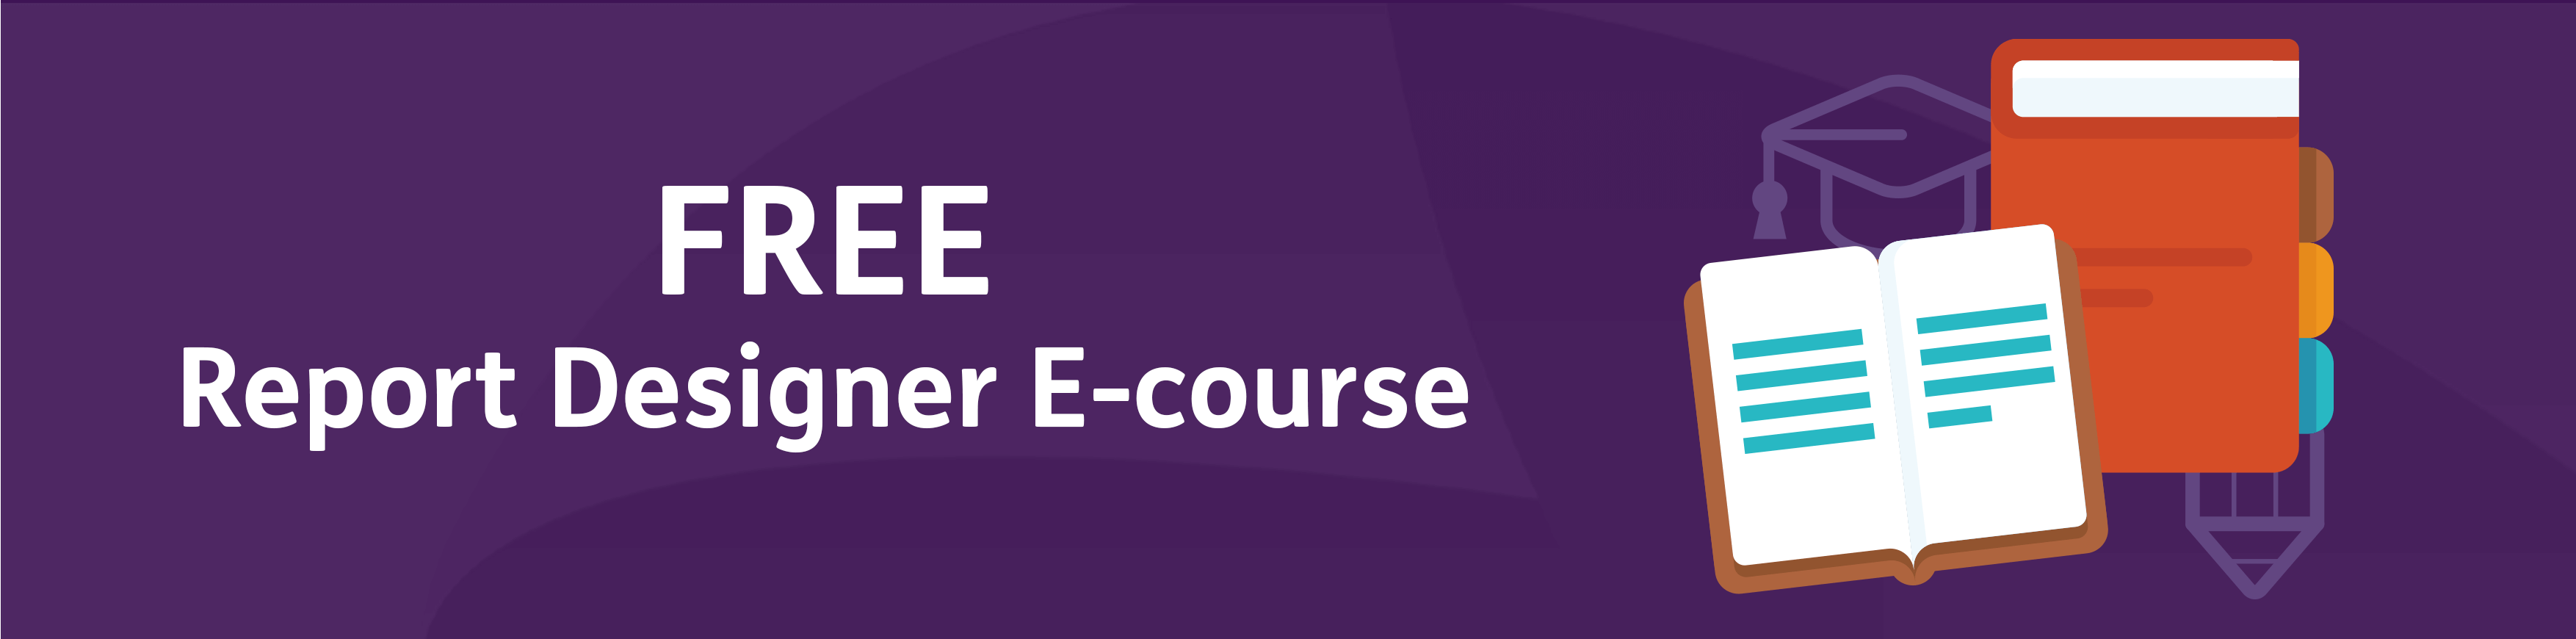 report designer field e-course